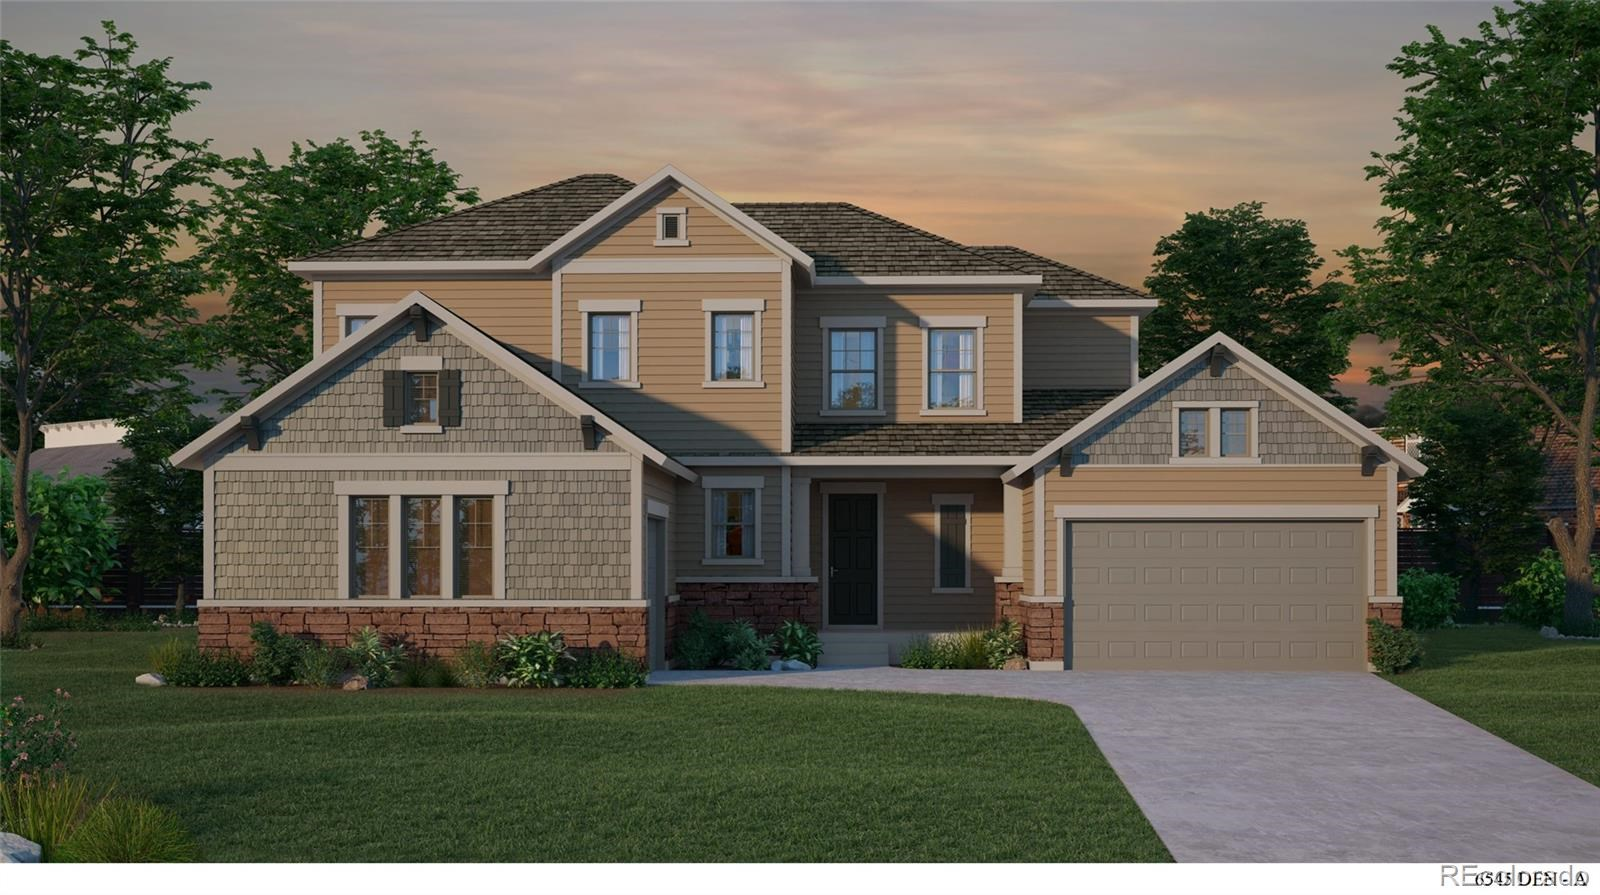 MLS# 5236856 - 2 - 18592 W 95th Place, Arvada, CO 80007